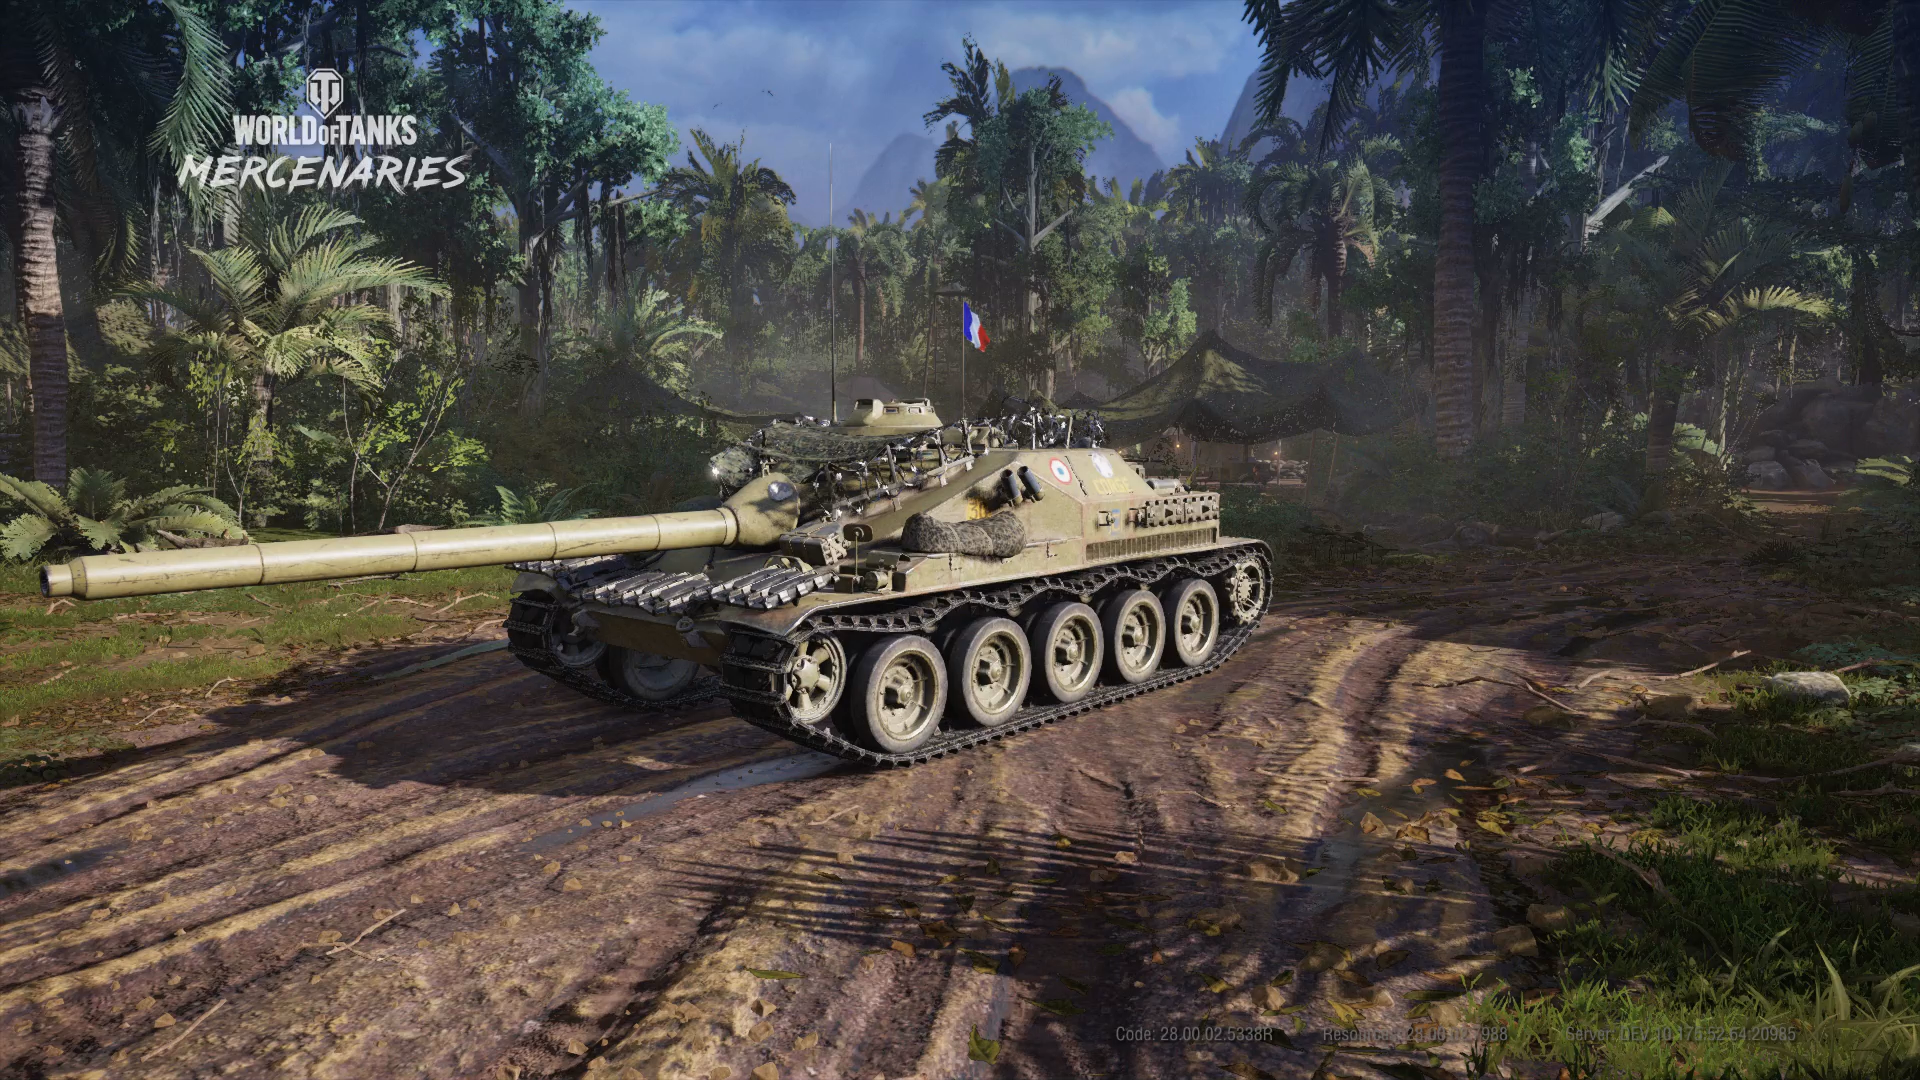 World of Tanks Mercenaries Commander Mode Announced by Wargaming